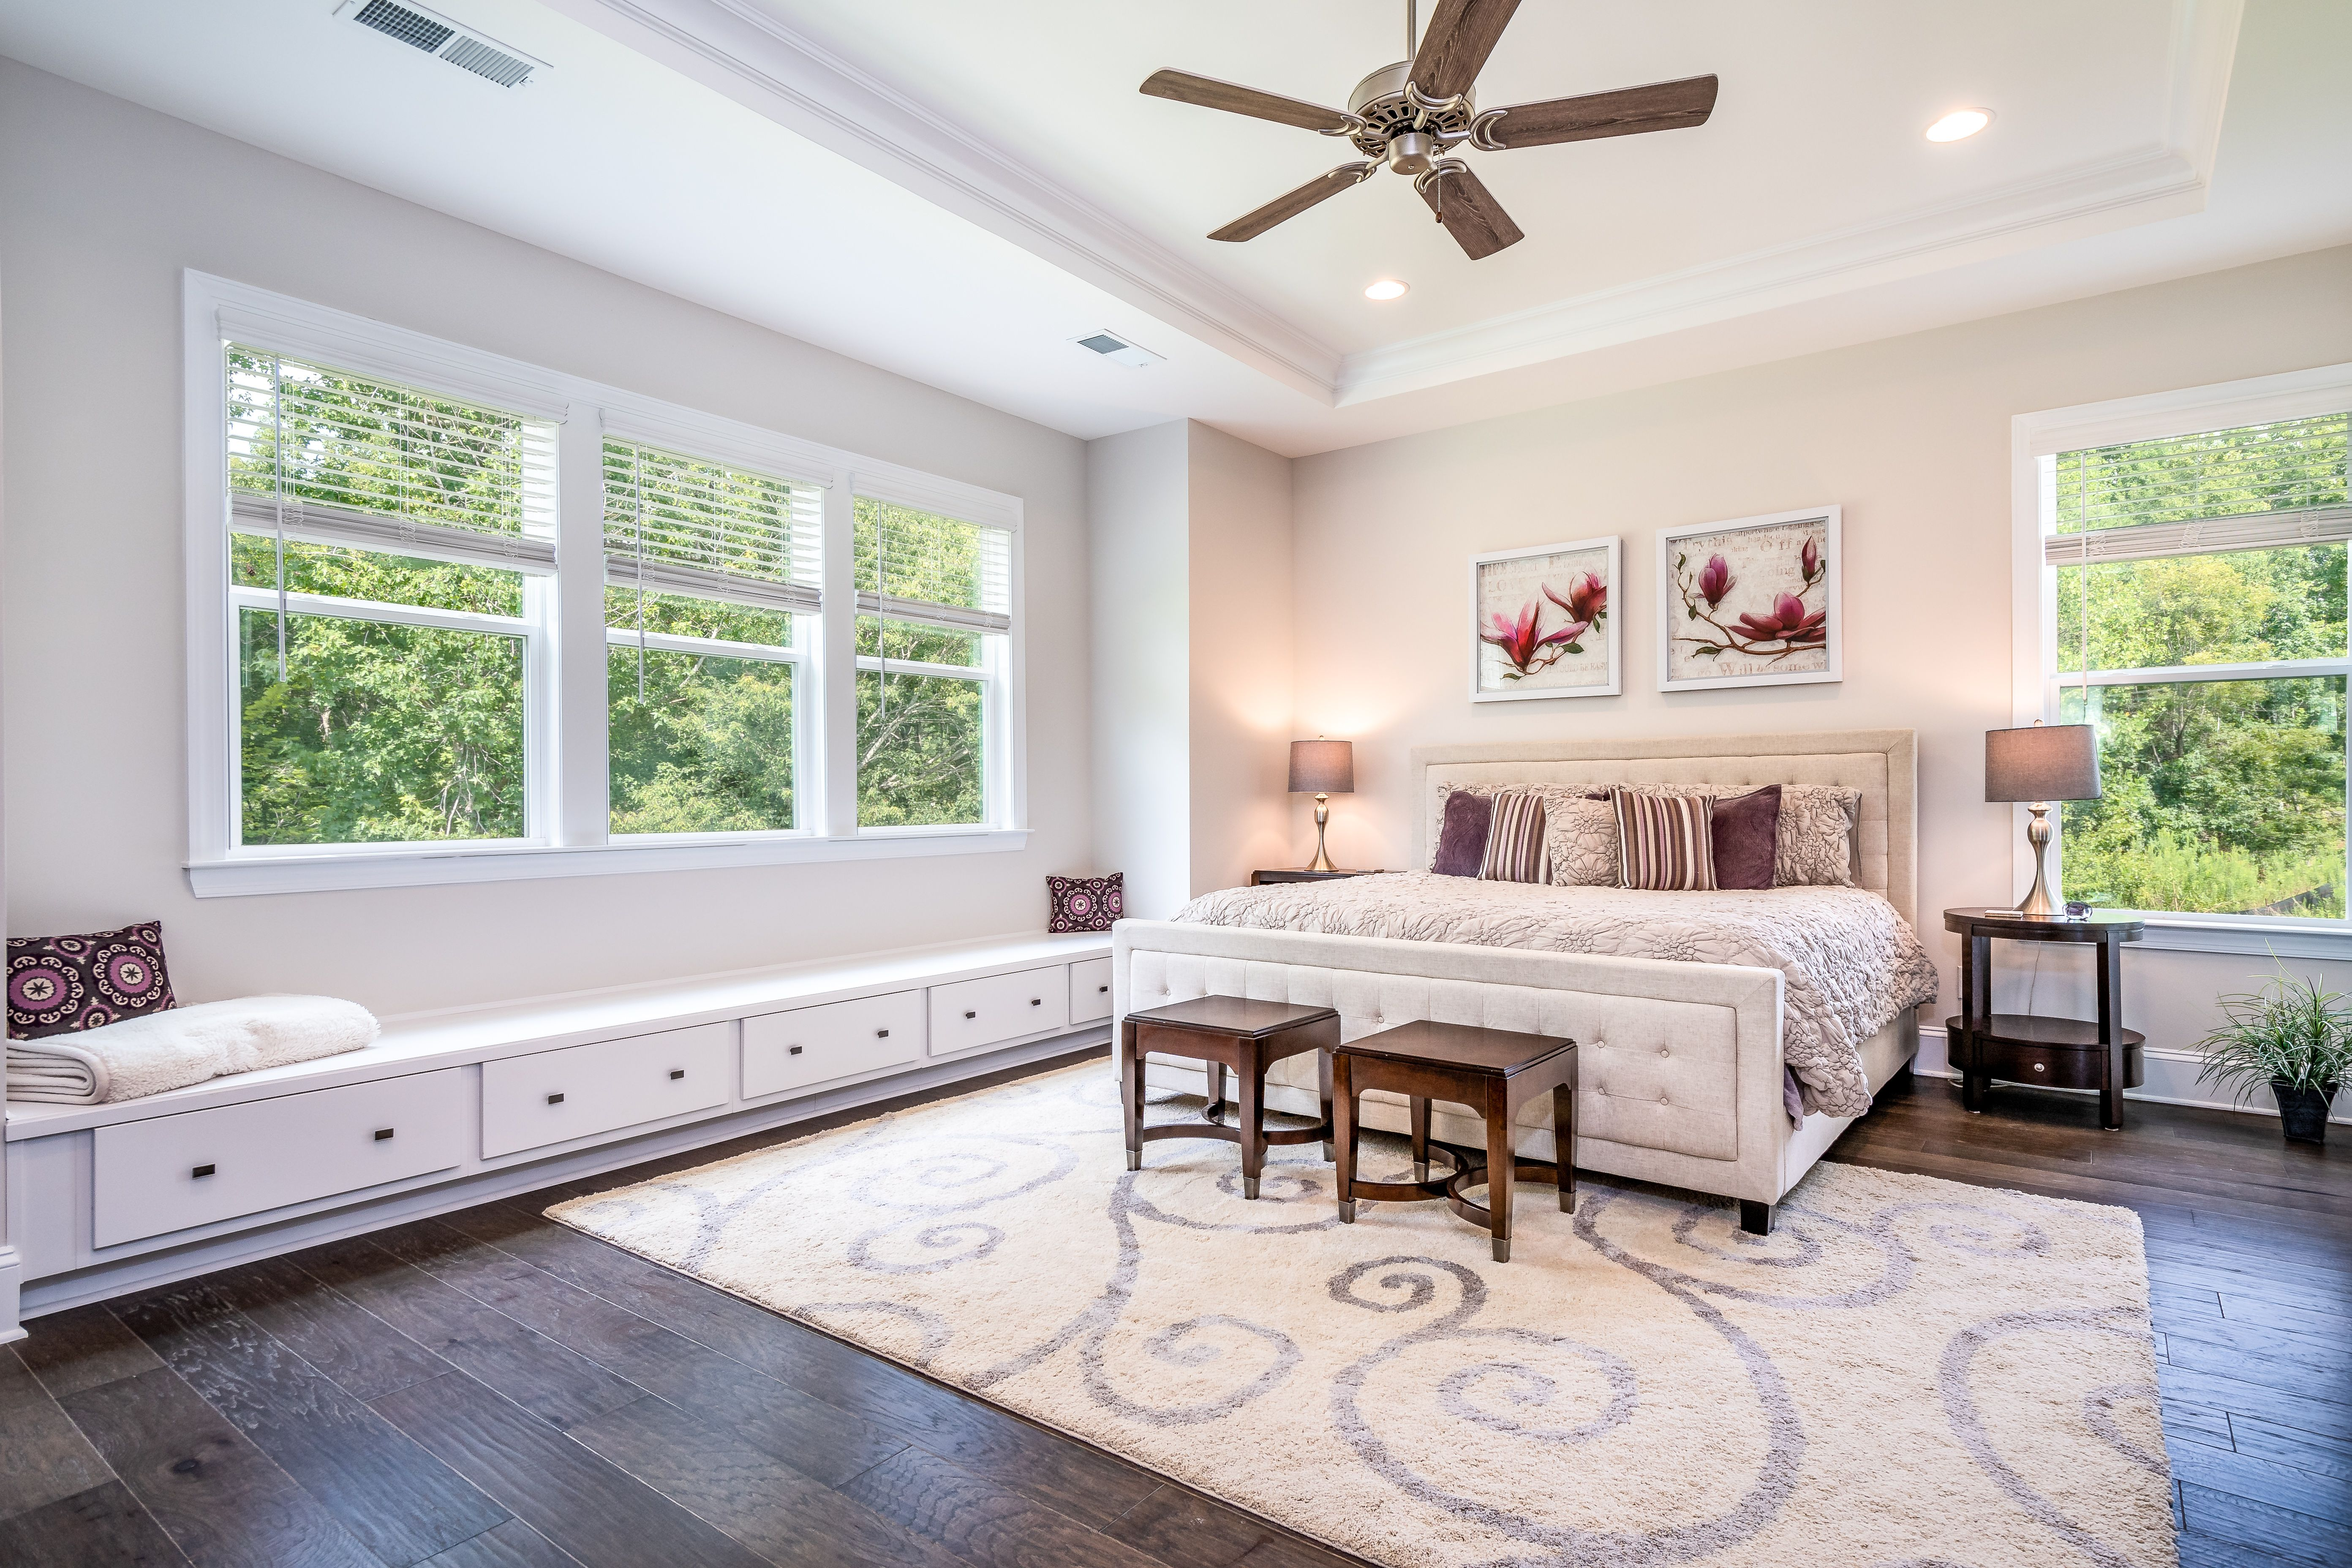 Bedroom featured in the Columbia with Retreat By Greybrook Homes in Charlotte, NC